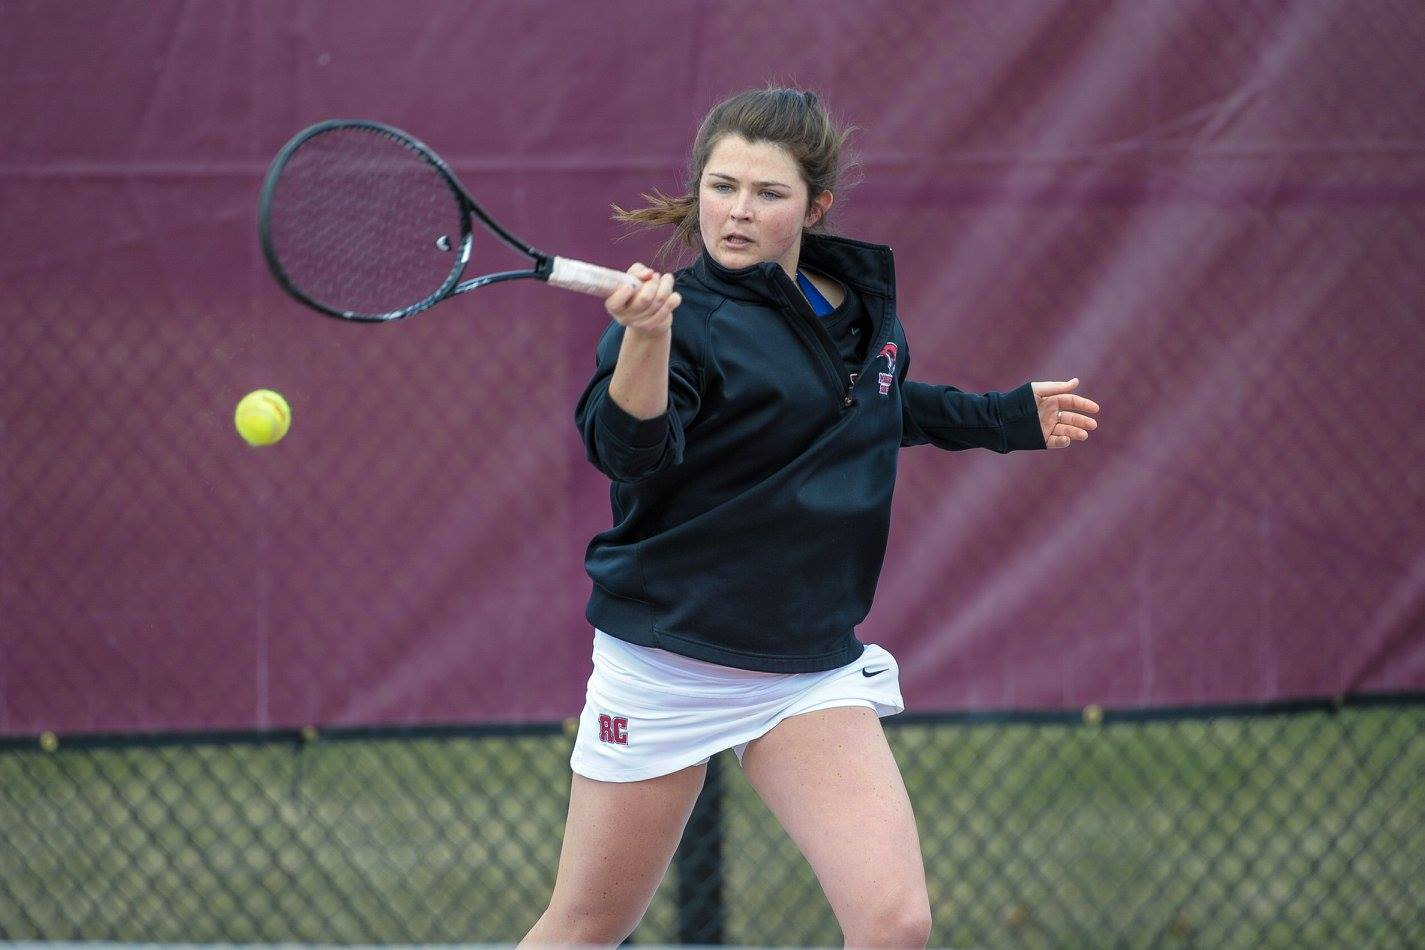 BC Takes 6-3 Women's Tennis Win Over RC